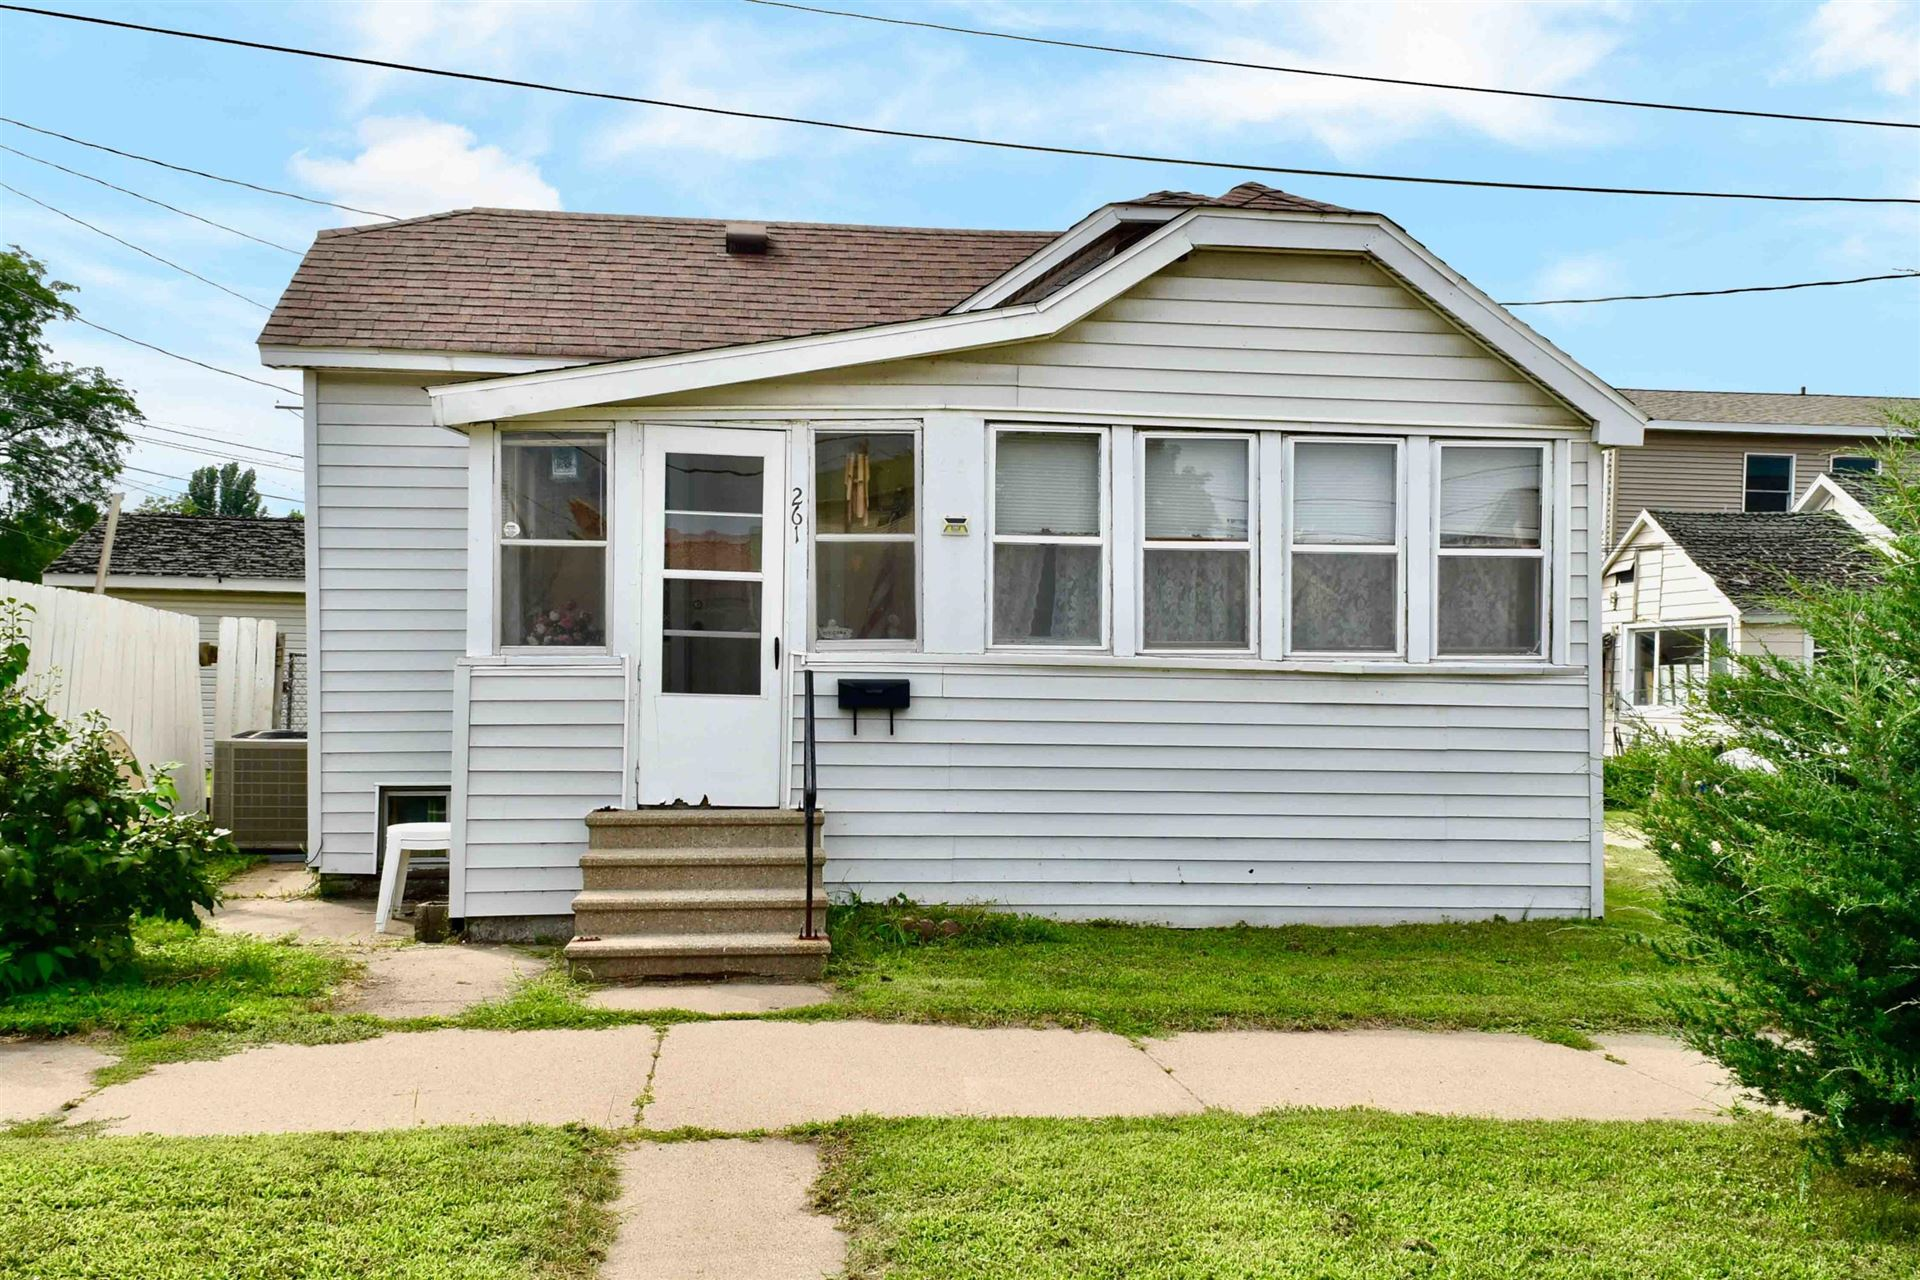 261 High Forest St, Winona, MN 55987 - MLS#: 1753960